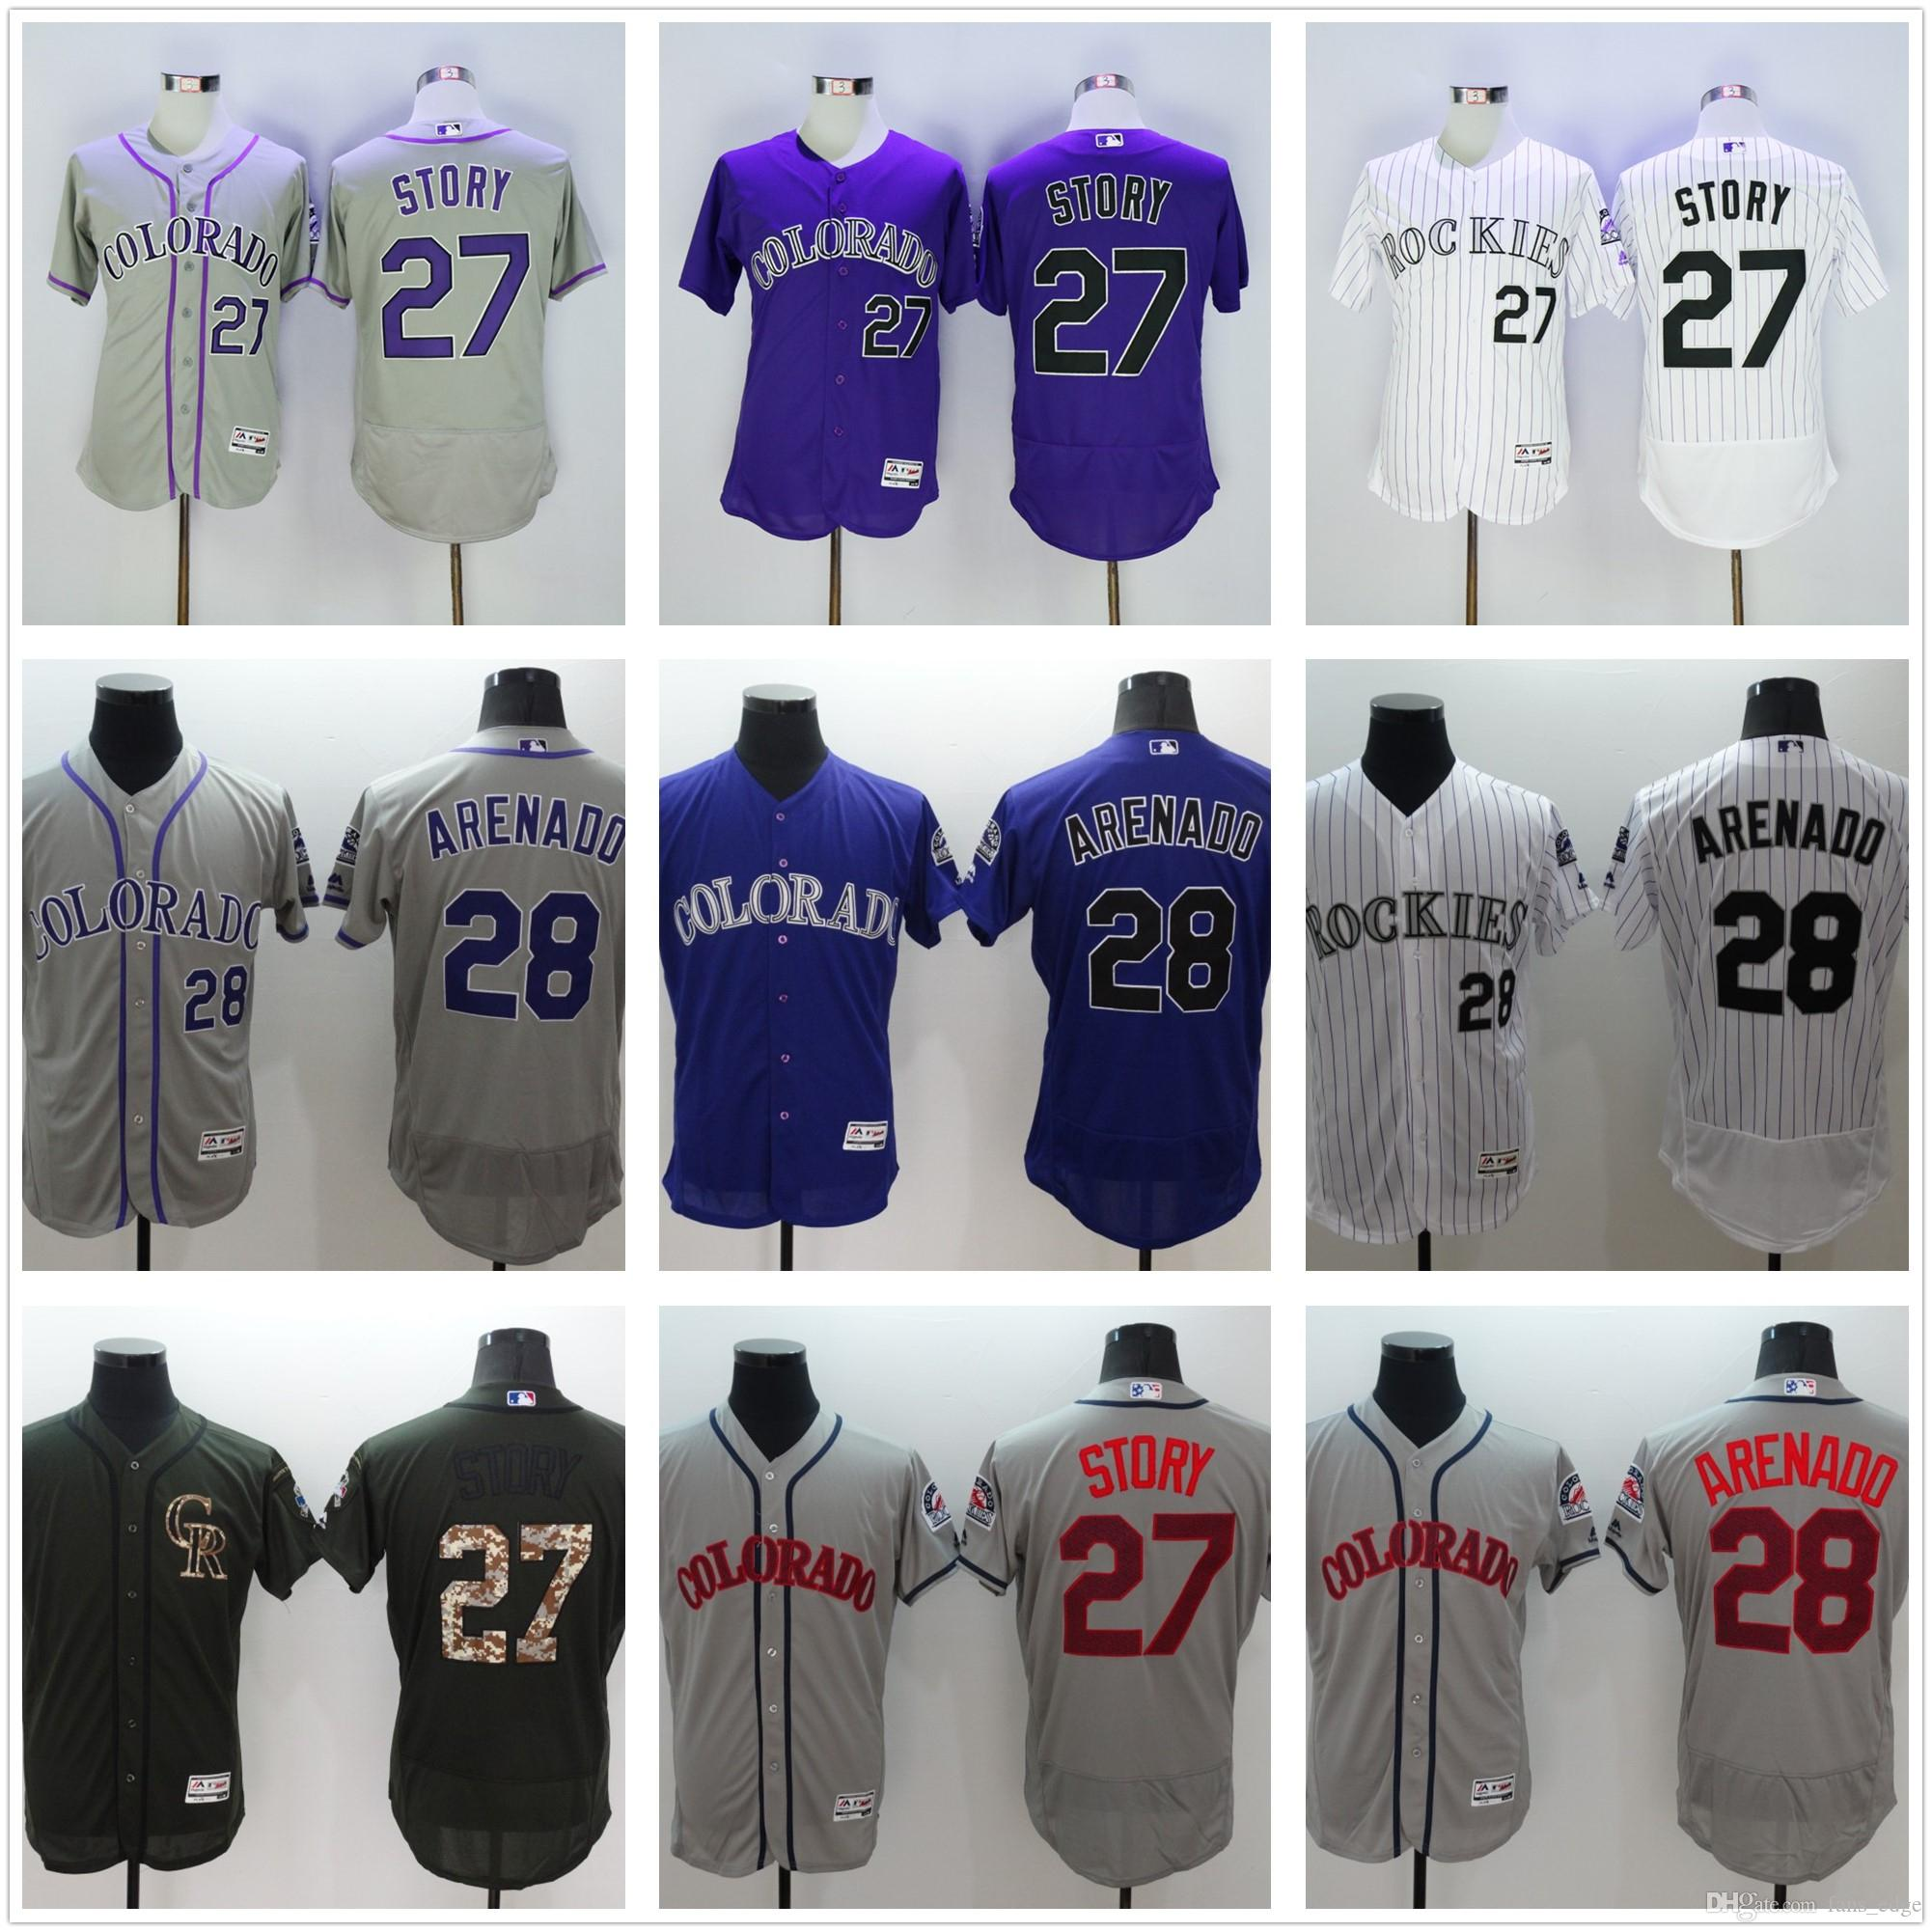 super cute a6fbc b3550 2017 2016 2017 Flexbase Stitched Colorado Rockies Jerseys 27 Trevor Story  28 Nolan Arenado White Gray Purple Baseball Jersey From Fans_edge, $14.19 |  ...